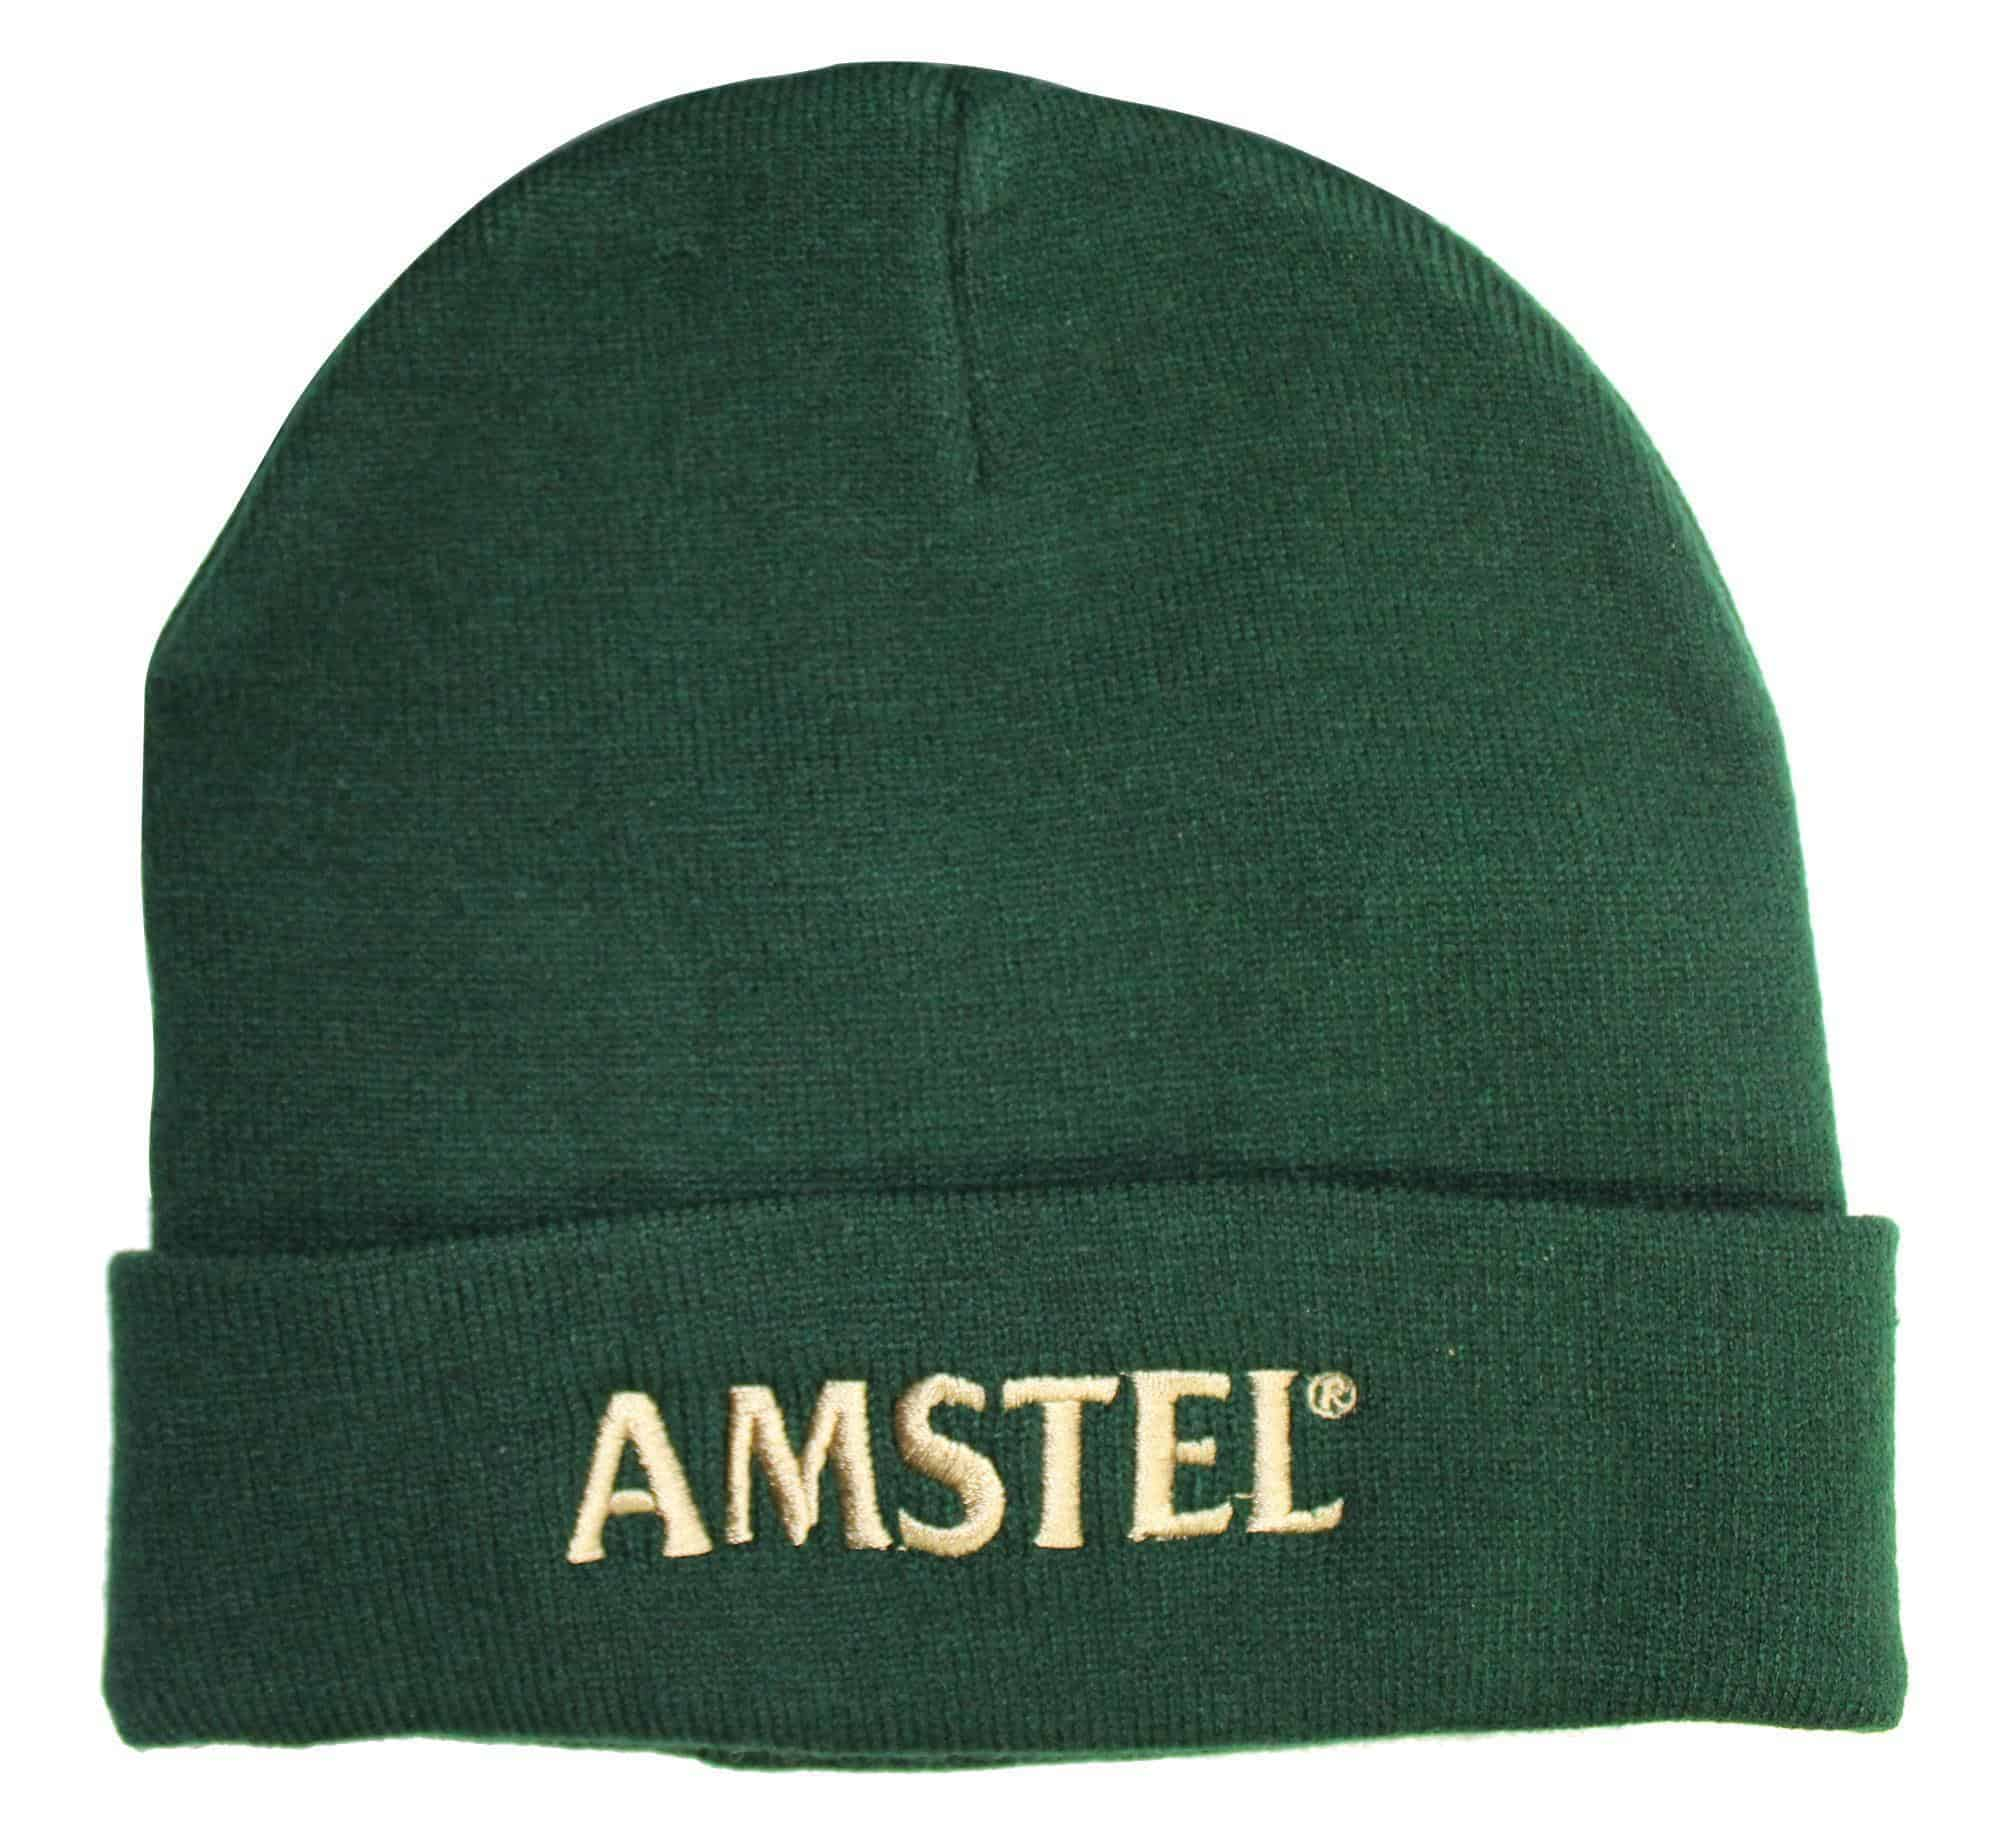 Amstel – Cuffed Knitted Beanie Headwear and Accessories